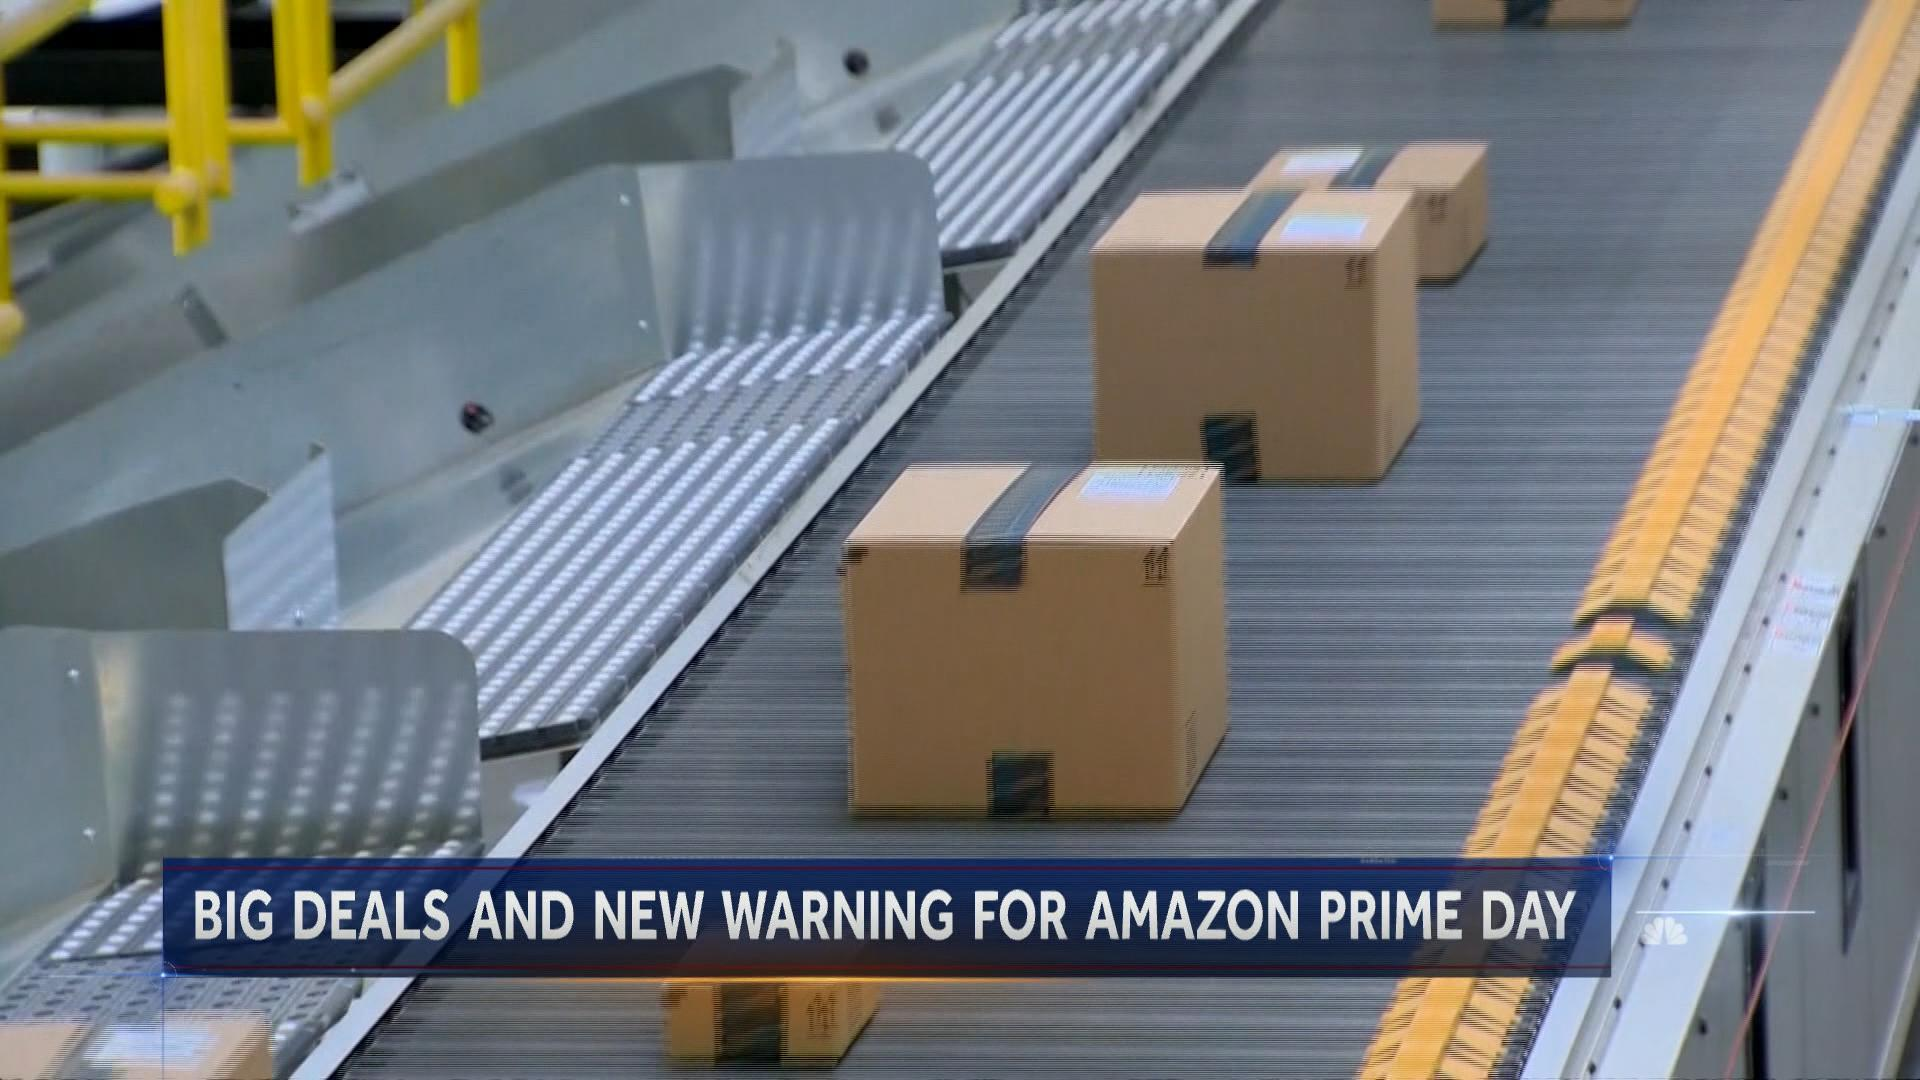 Amazon Prime Day is here, but experts say shop with caution